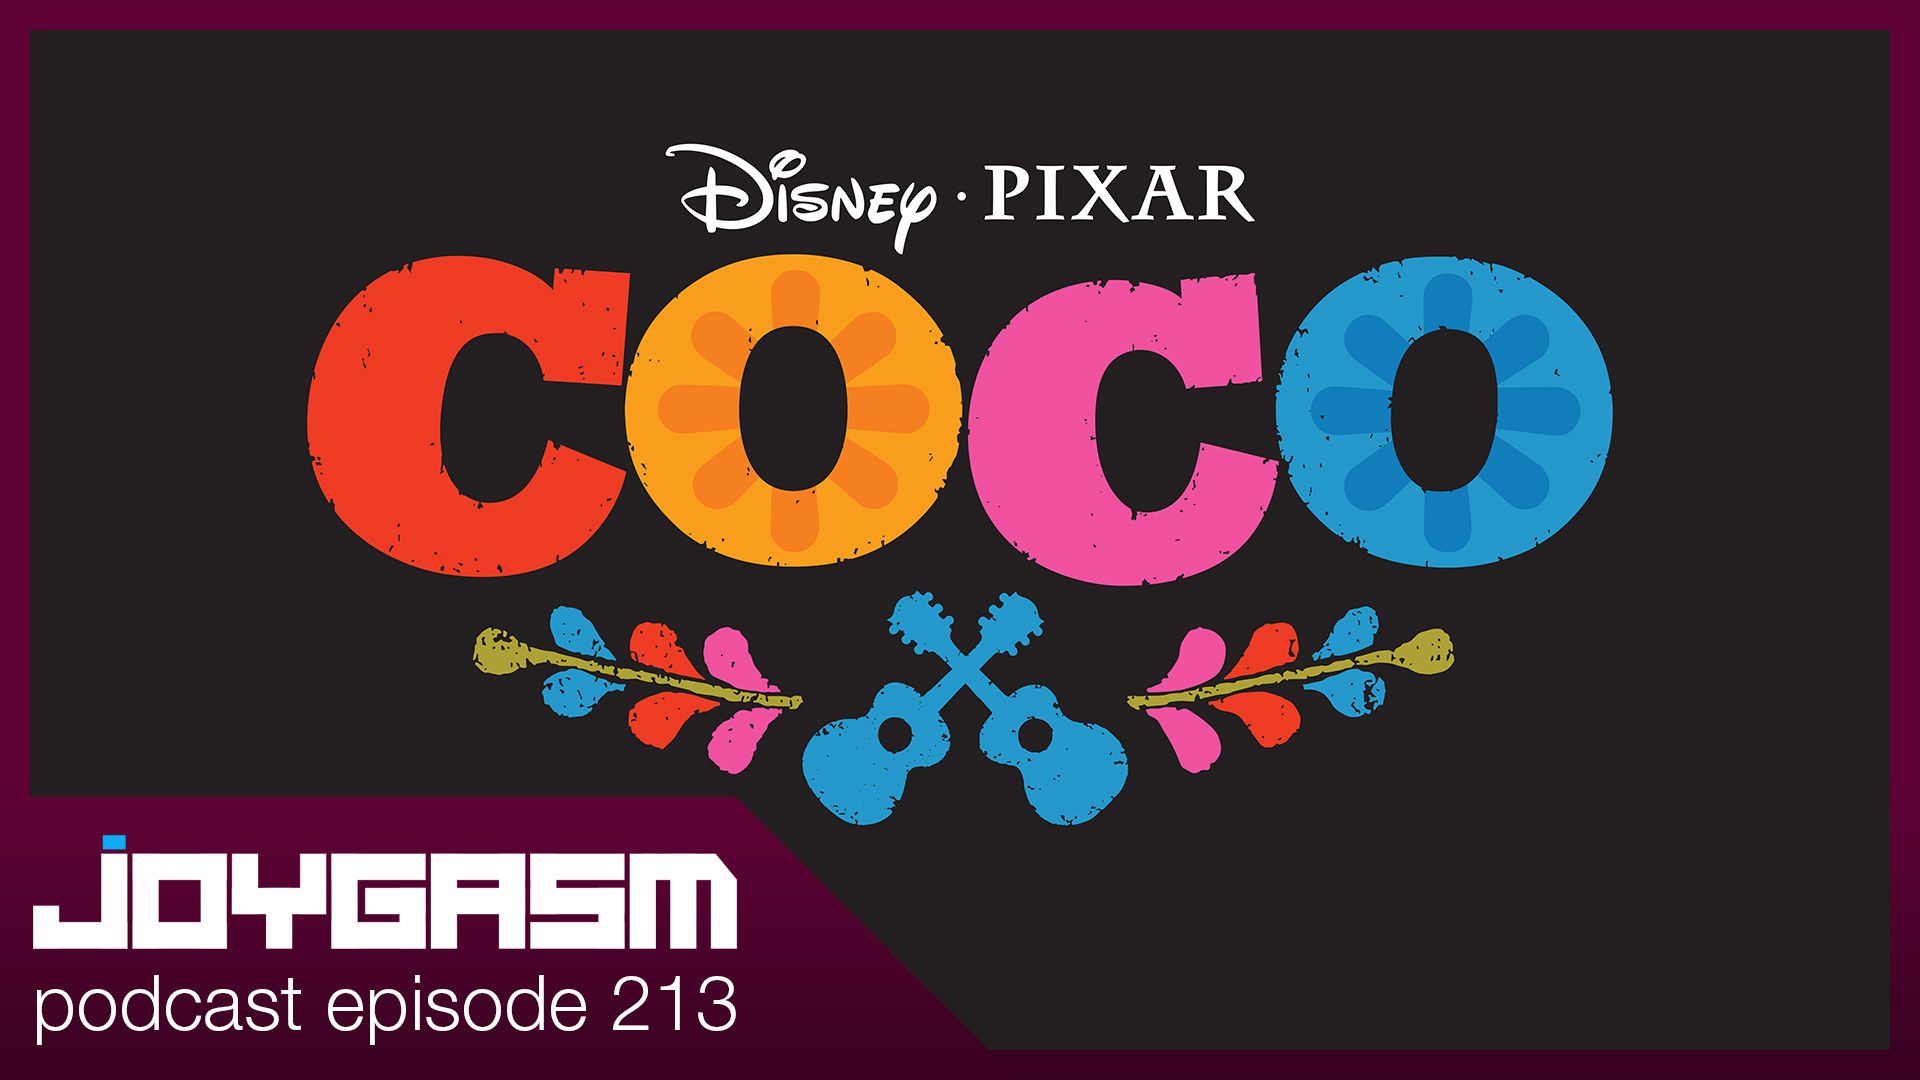 Ep. 213: Coco Movie Review & Texas Freezes Over